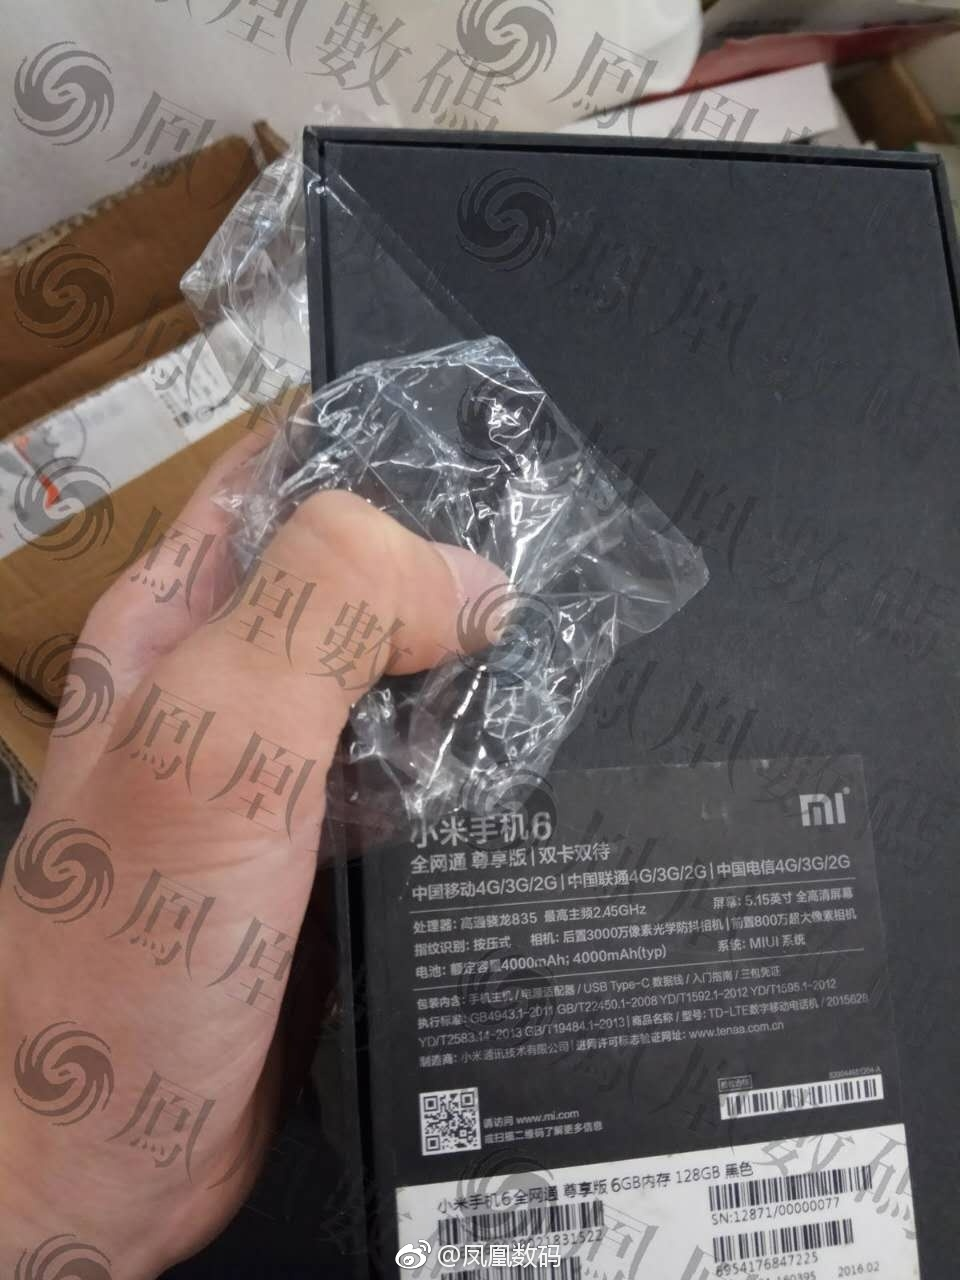 Leaked retail box of Xiaomi Mi 6 shows 30 MP rear camera and Snapdragon 835